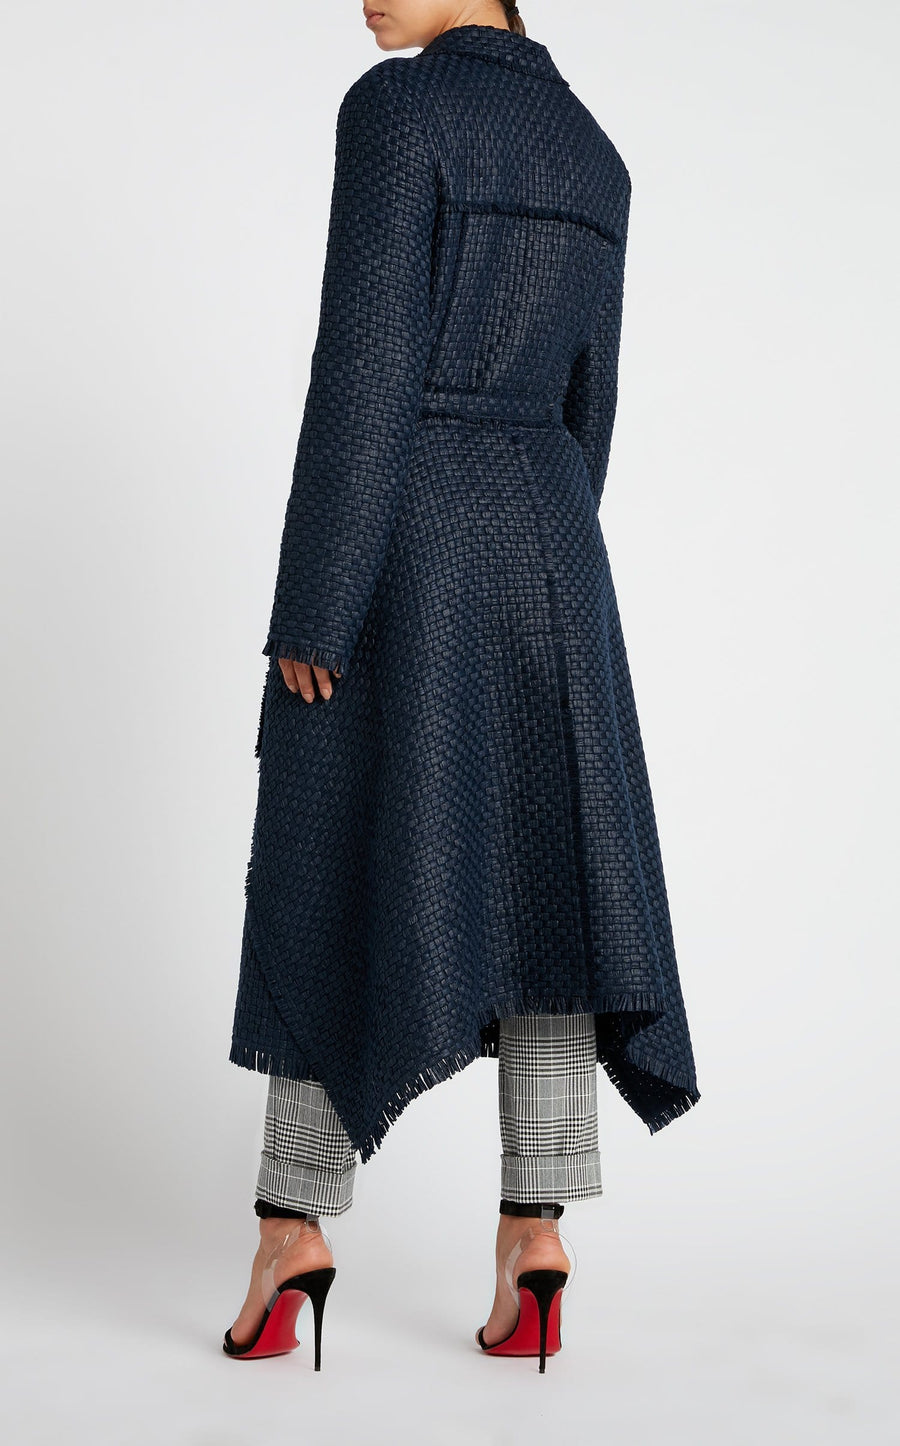 Pullman Coat In Navy from Roland Mouret